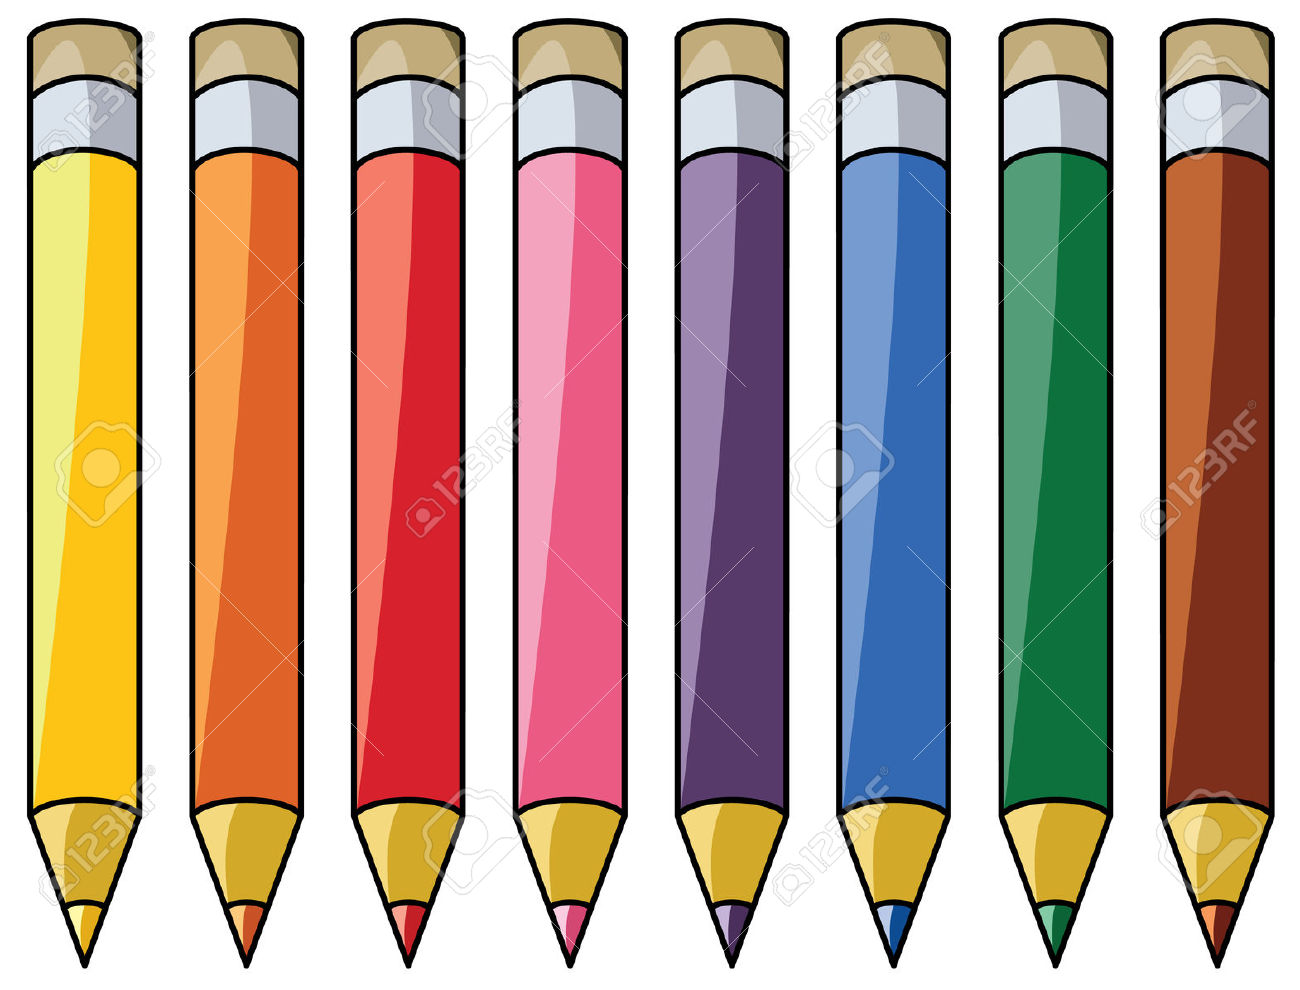 1300x990 Colourful Pencils Clipart Royalty Free Cliparts Vectors And Image